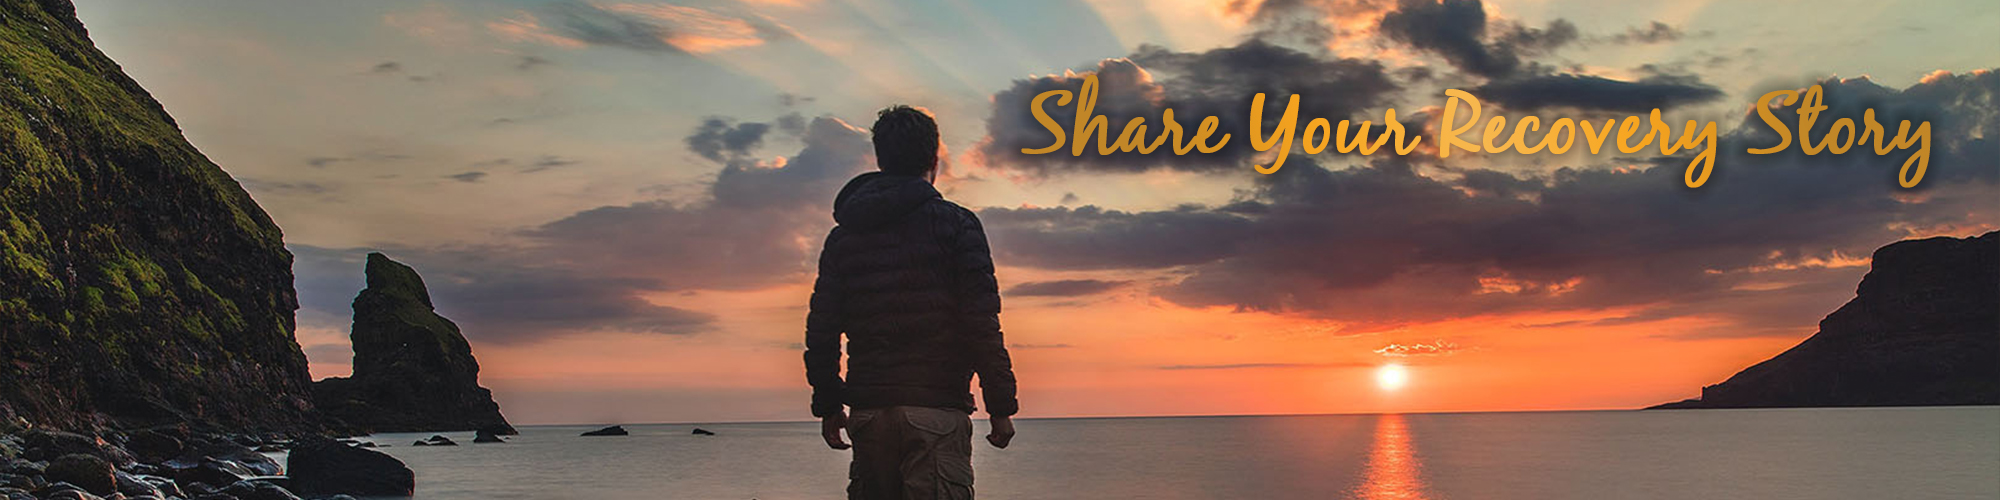 Share Your Story of Recovery